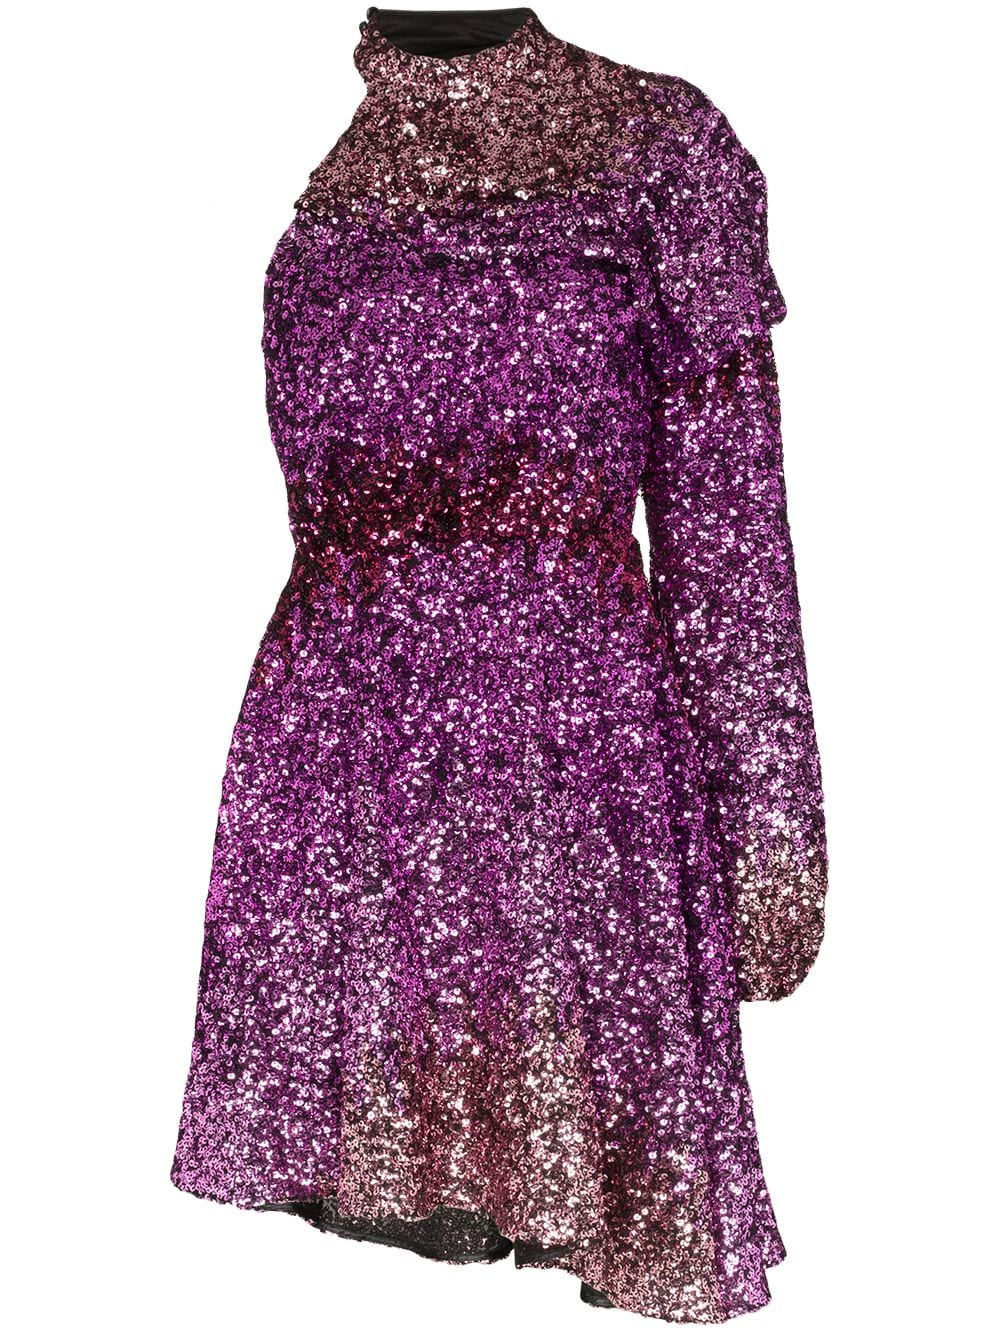 One Sleeve Dress with sequins